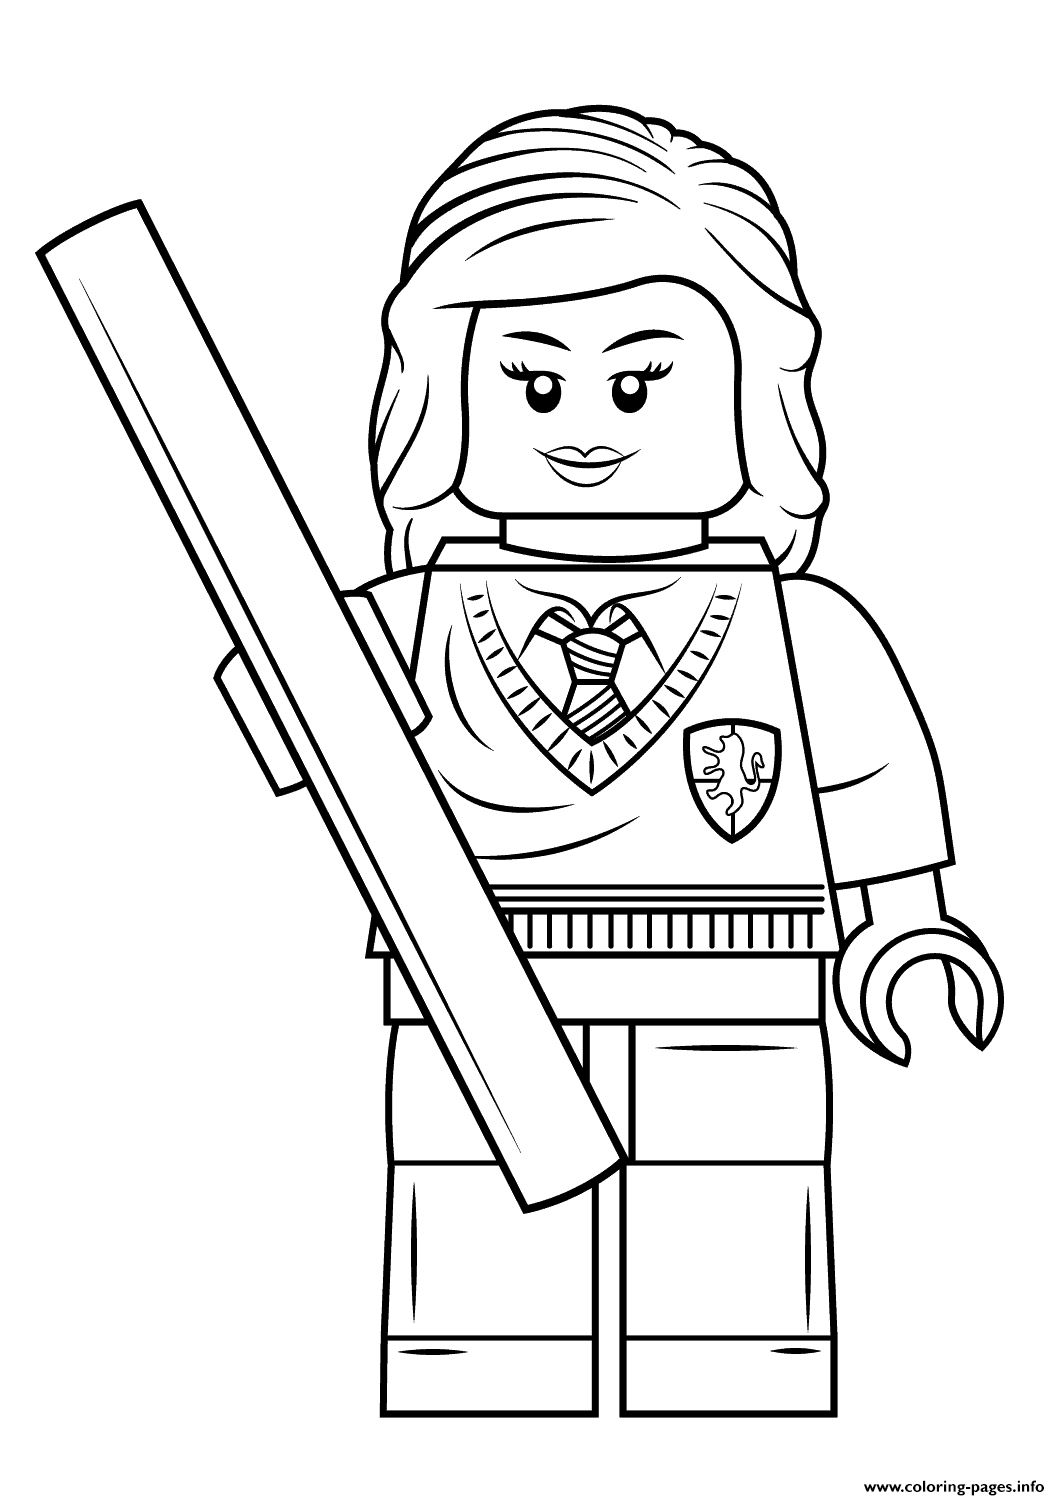 Print Lego Hermione Granger Harry Potter Coloring Pages Hermione